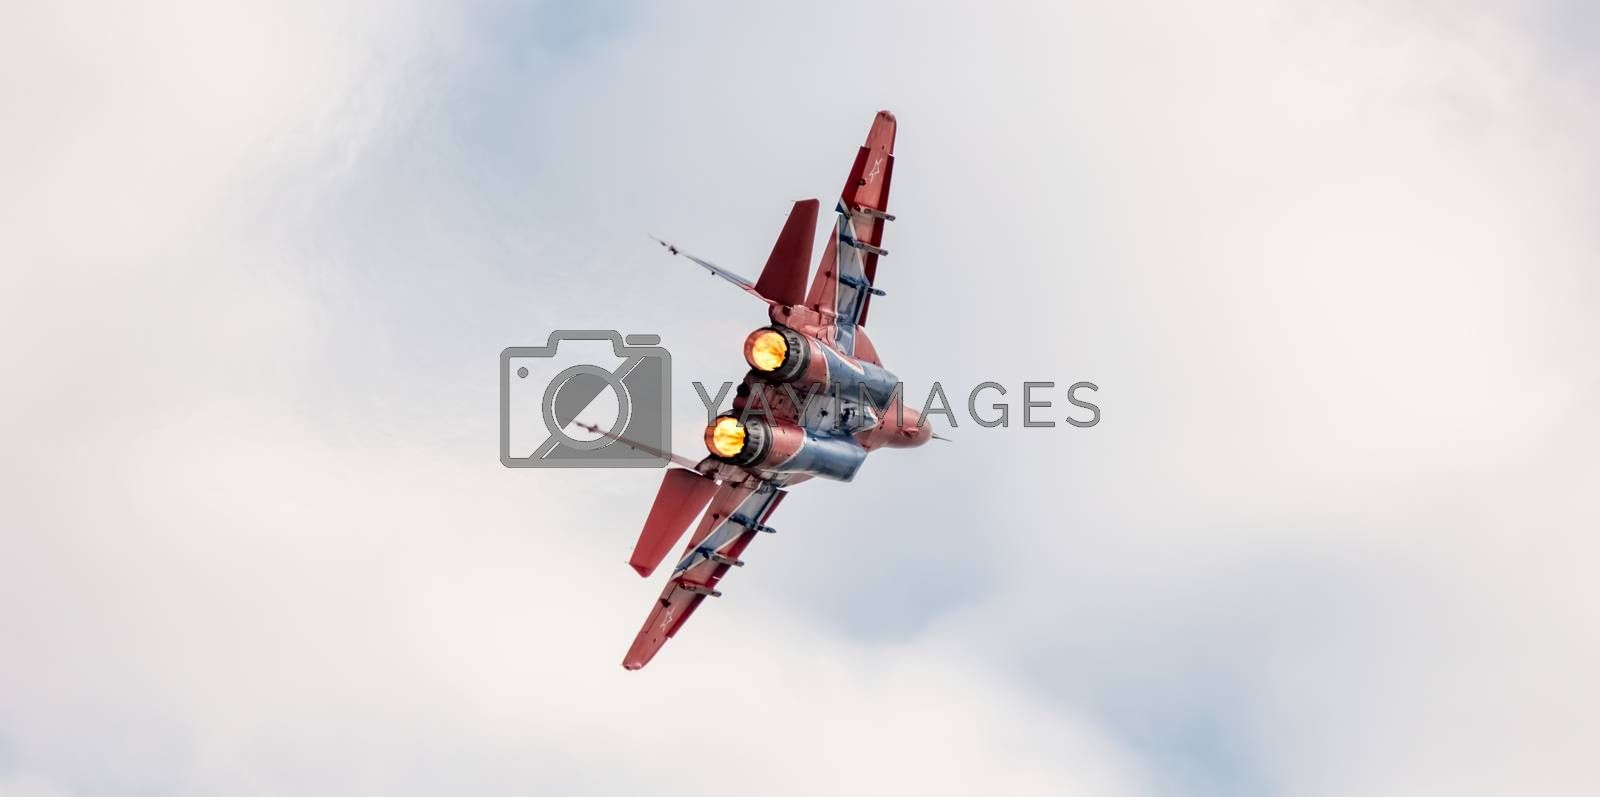 Barnaul, Russia - September 19, 2020: A close-up shot of Strizhi MiG-29 fighter jet performing stunts during an aeroshow. White cloudy sky as a background.